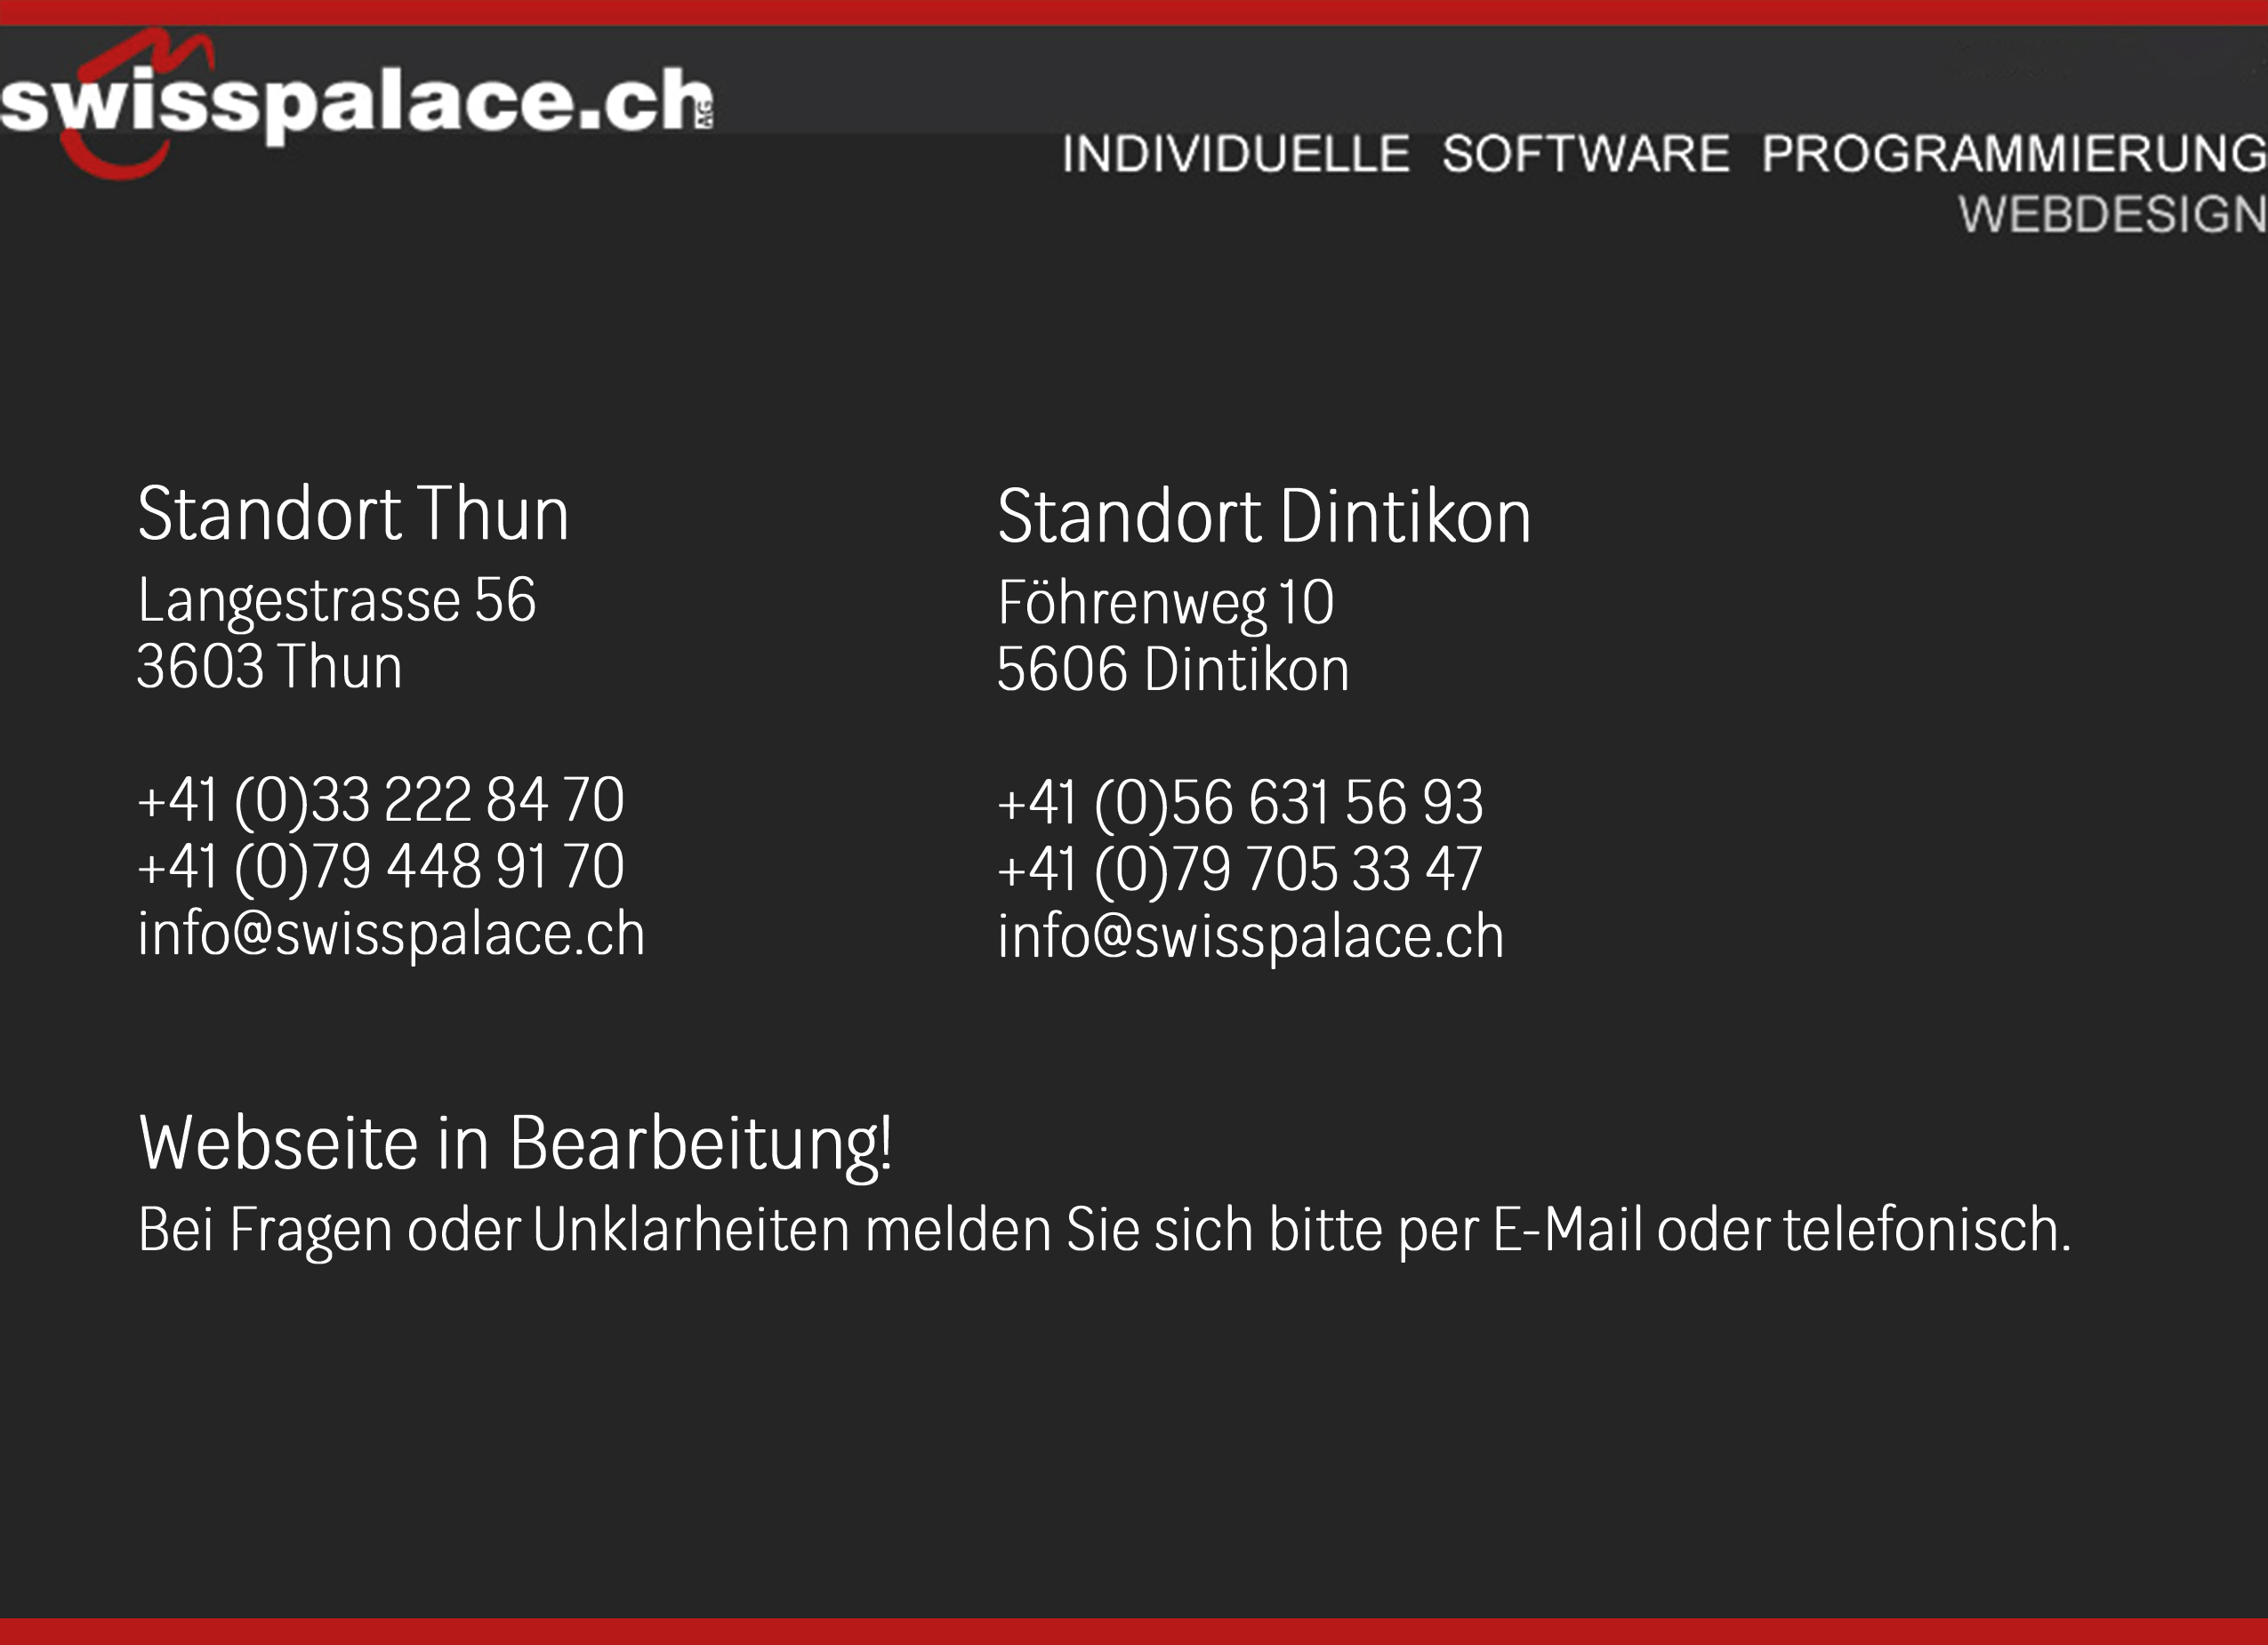 swisspalace.ch AG / 033 222 84 70